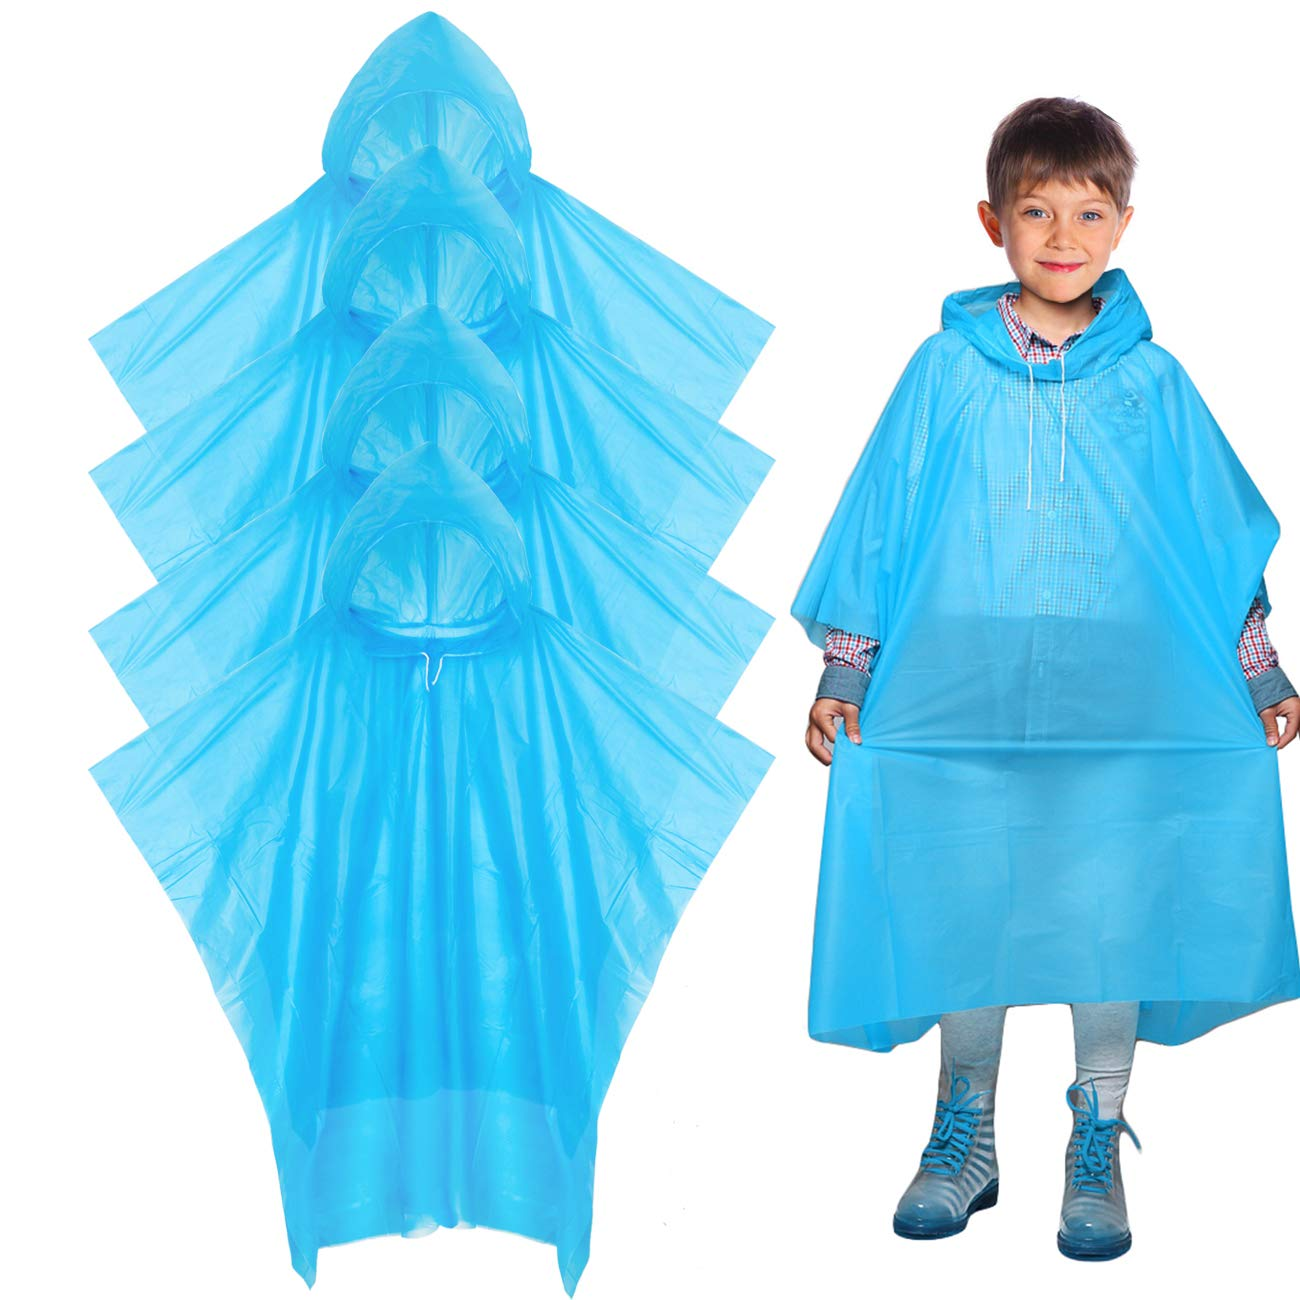 Digitek Waterproof Ponchos - Disposable Poncho Waterproof Raincoat Kids Adults, Waterproof Ponchos Disposable Raincoat, Raincoat Clear Rain Poncho Hood Cycling Camping - 4 Pack